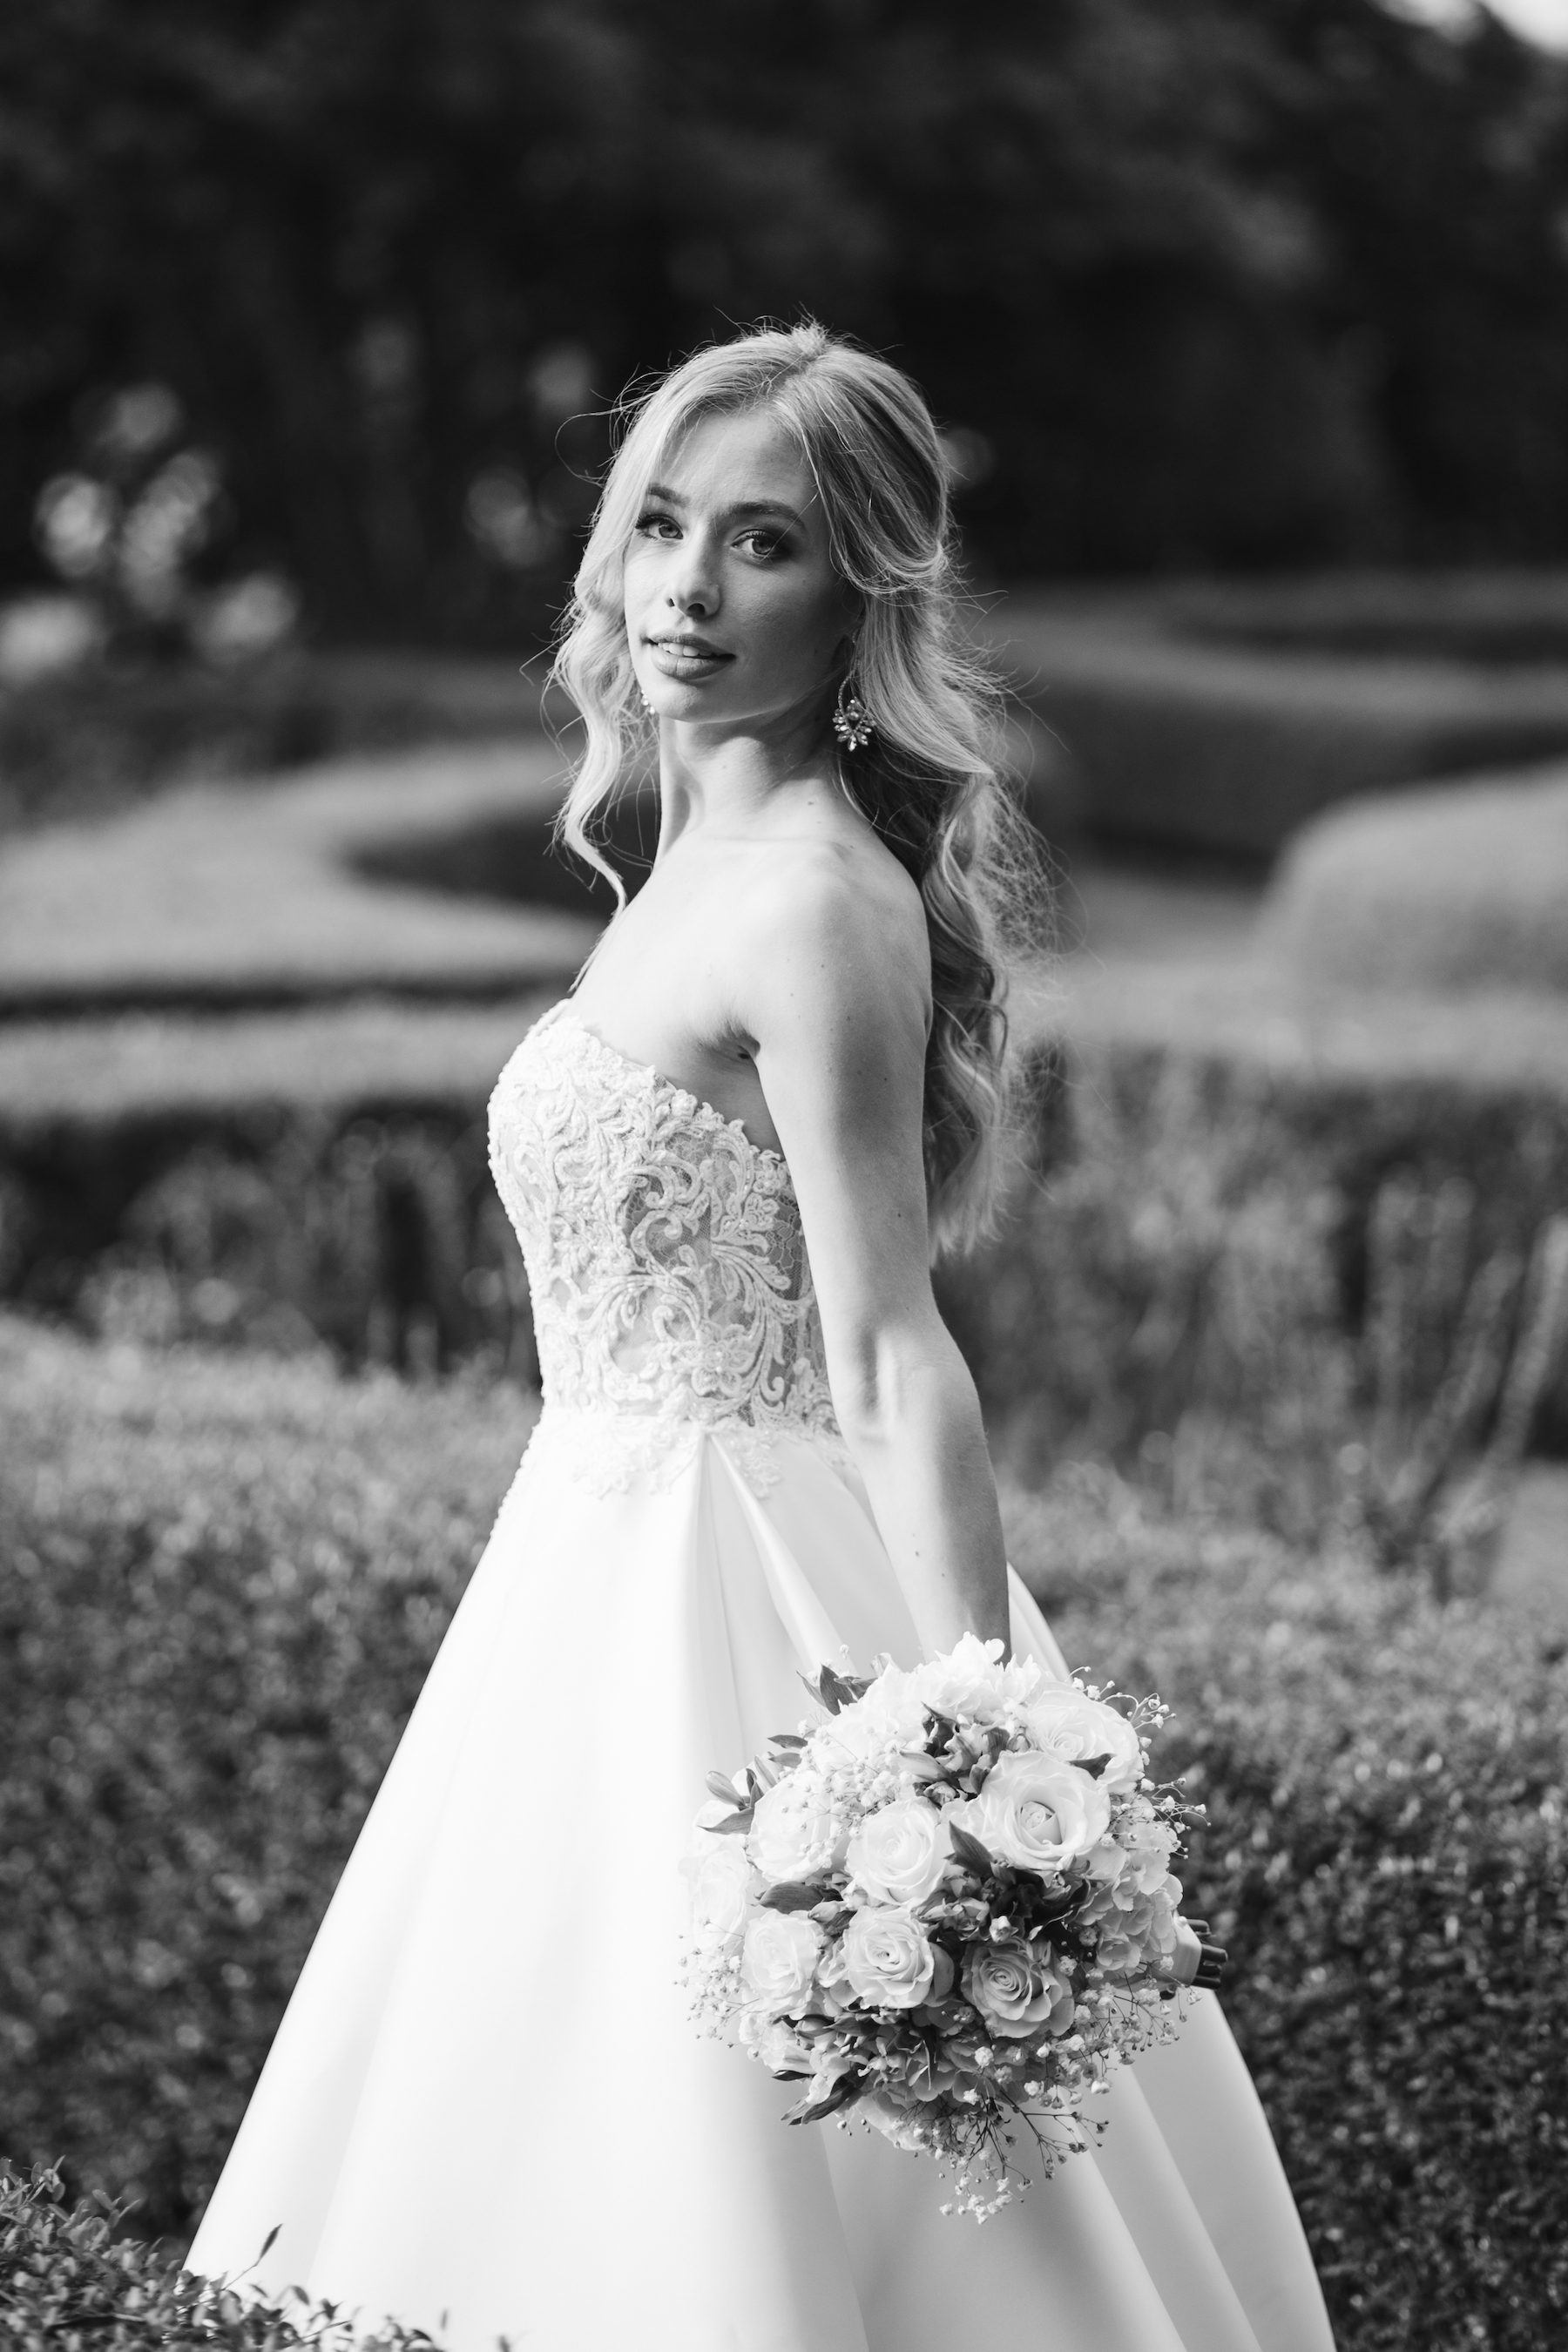 furman-university-bridals-paige-201.JPG